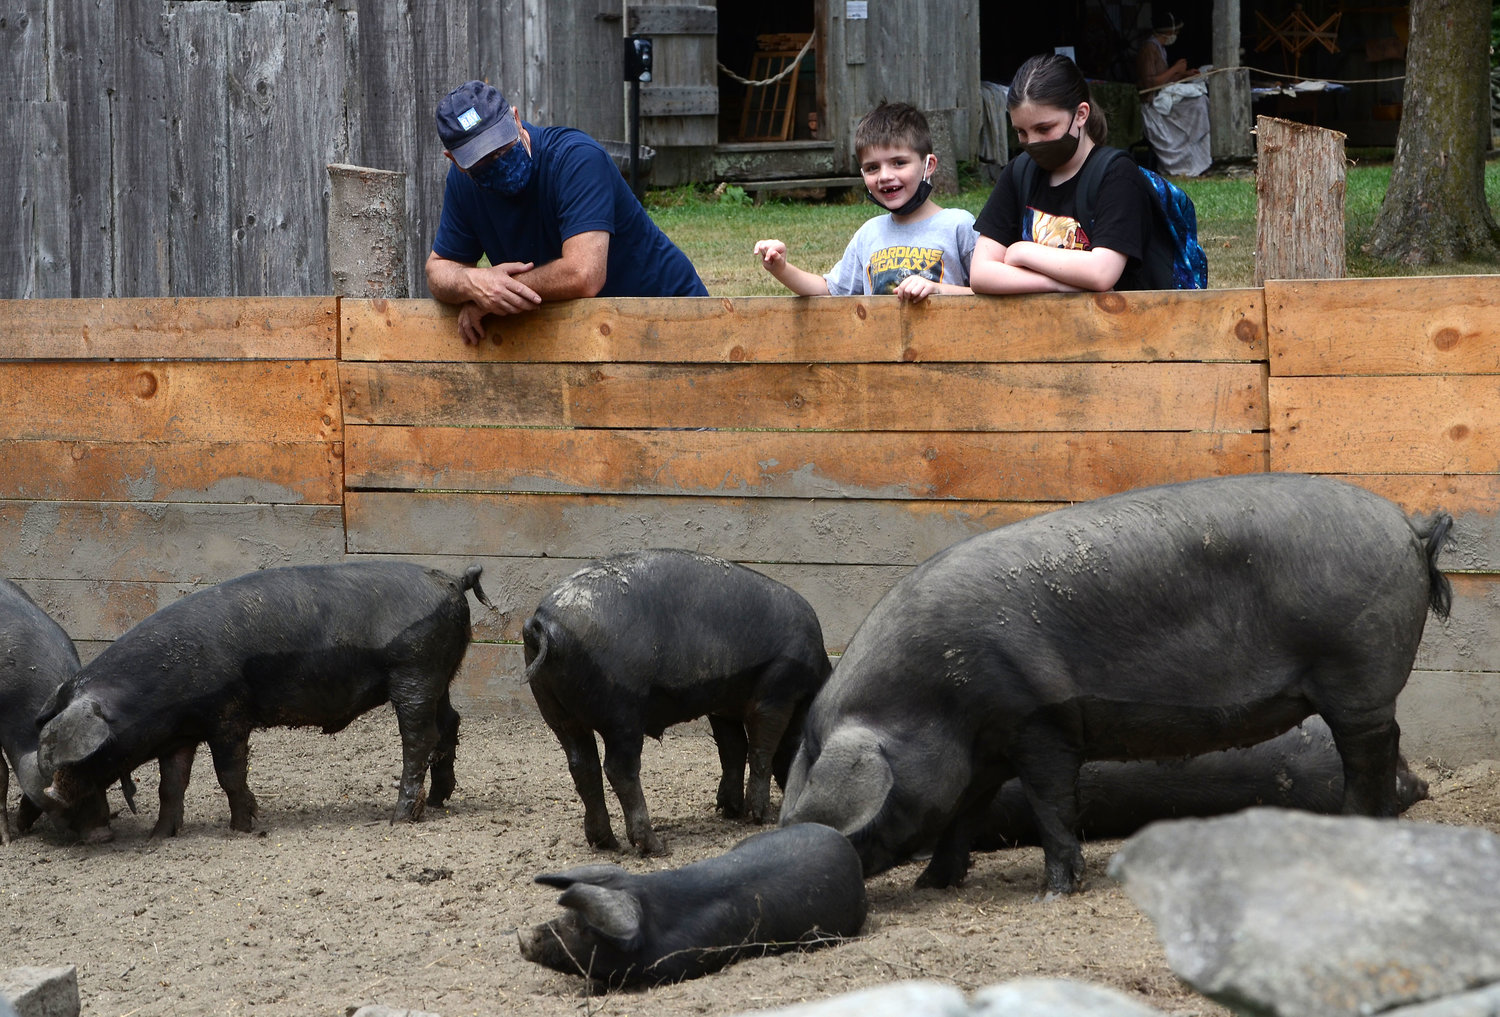 Jim Correia (left) and grandchildren, Owen Johnson, 6, and Emma Johnson, 11, watch English large black pigs bath in the mud at the farm on Friday. The pigs, from Narly Vines Farm in Tiverton, are similar to pigs that would have been in the area around 1790.